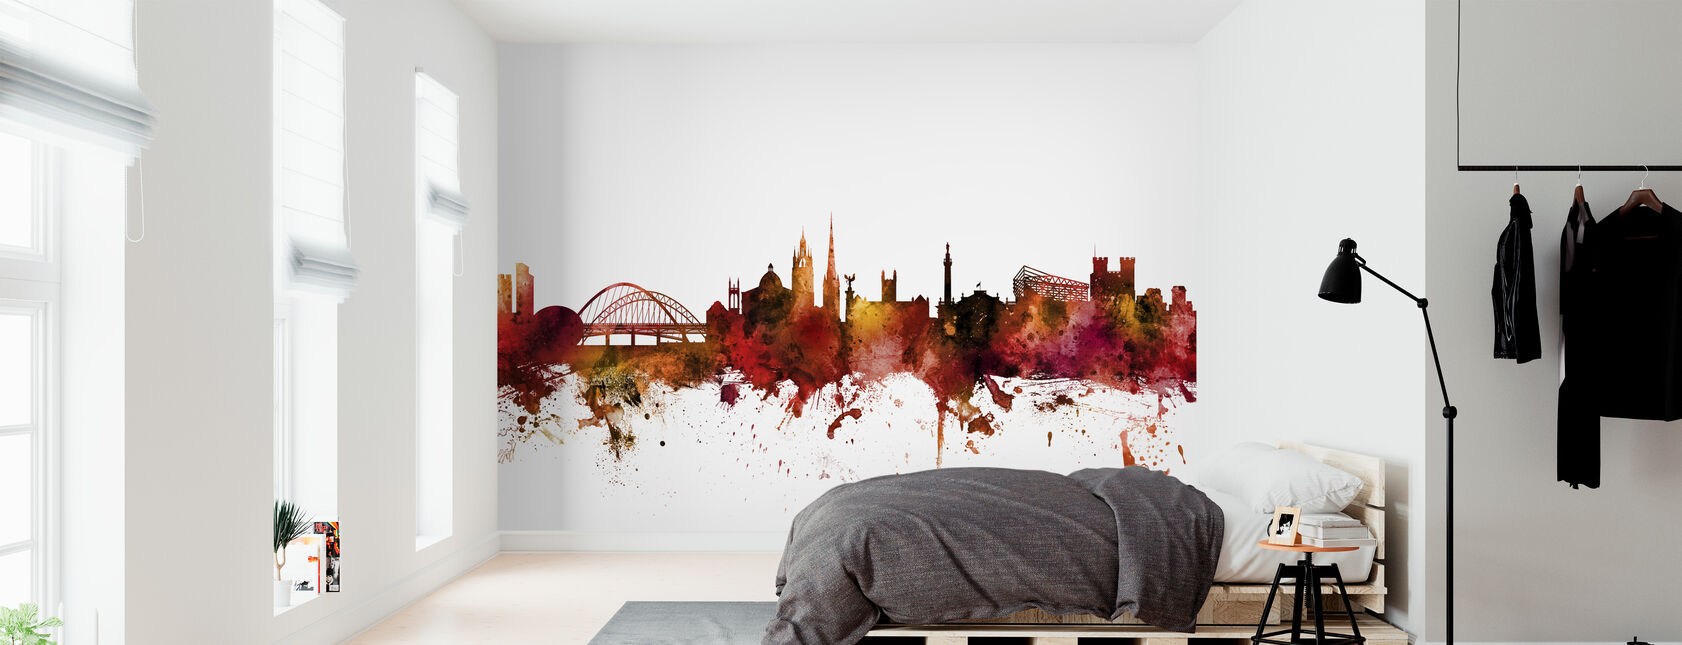 Newcastle England Skyline - Wallpaper - Bedroom